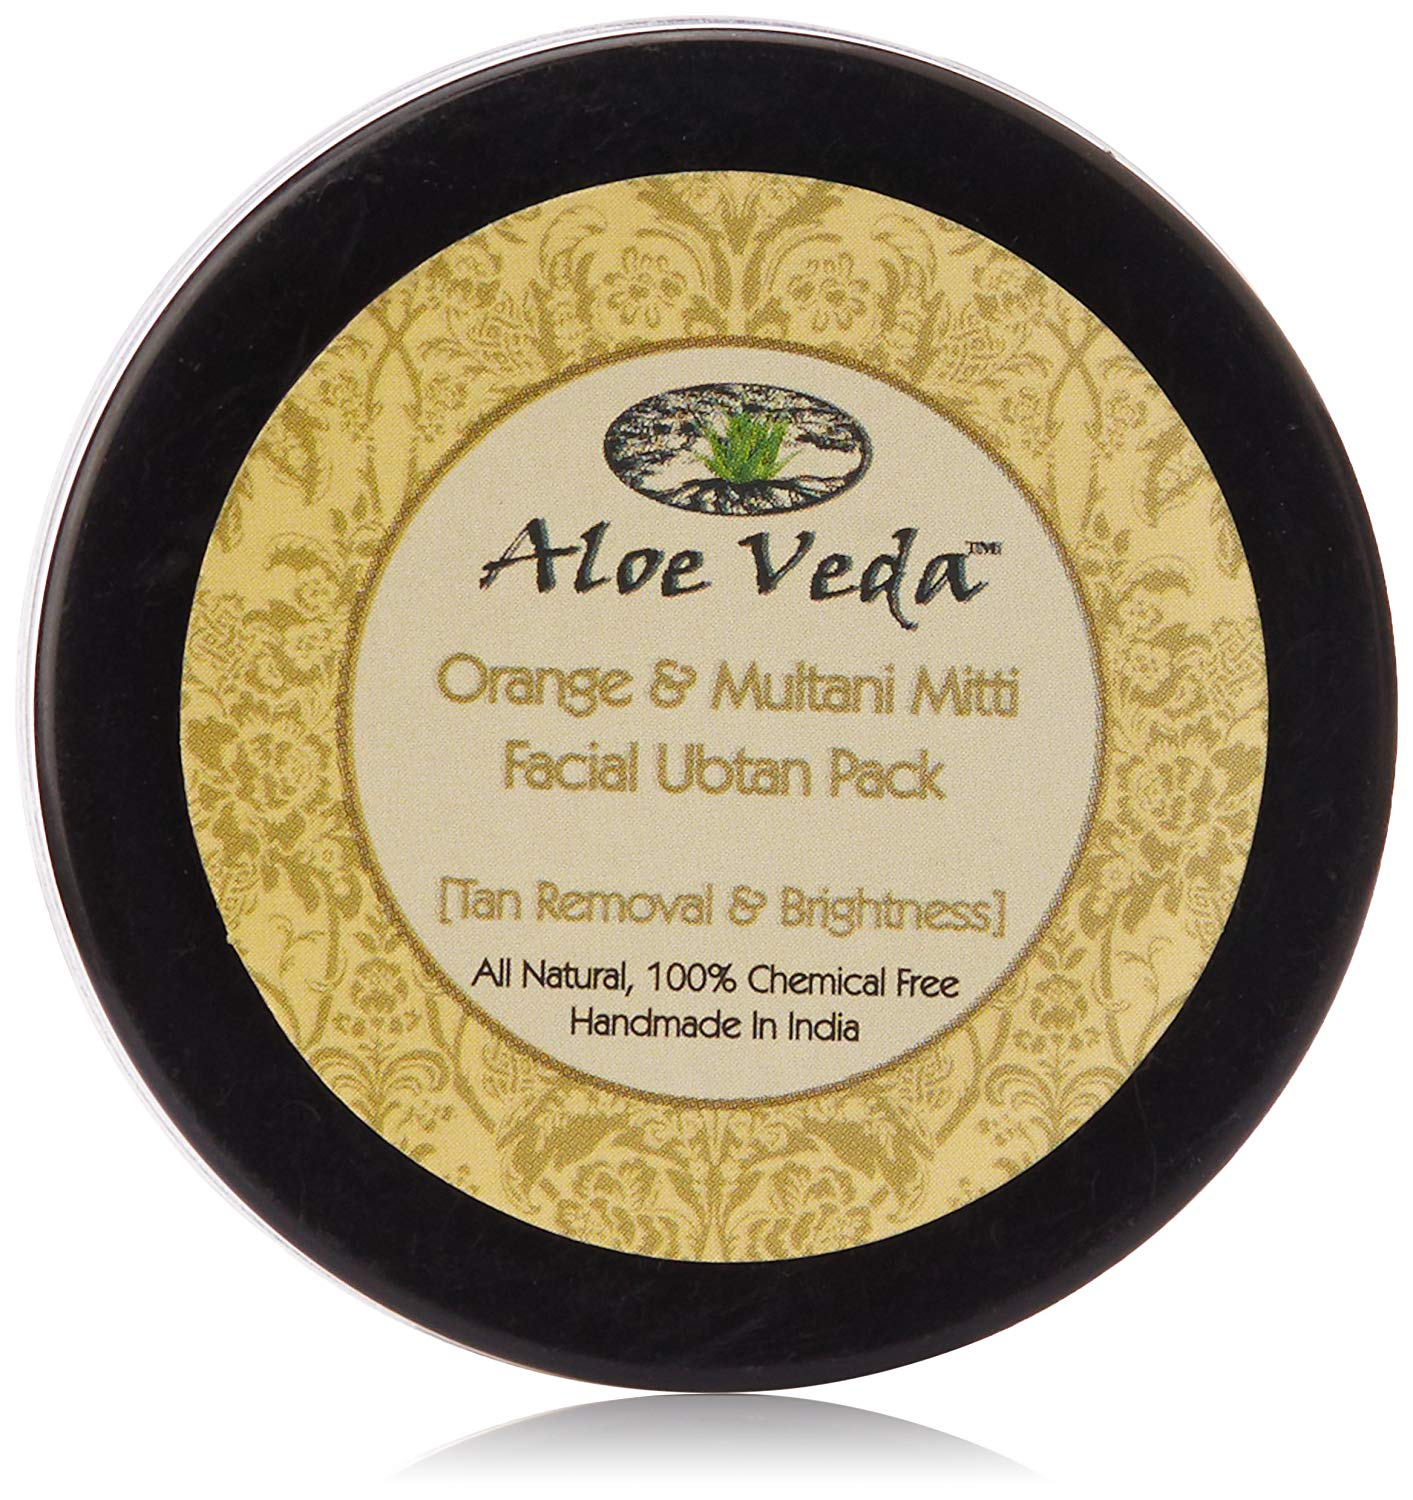 Aloe Veda Orange & Multani Mitti Ubtan (Tan Removal & Brightness)